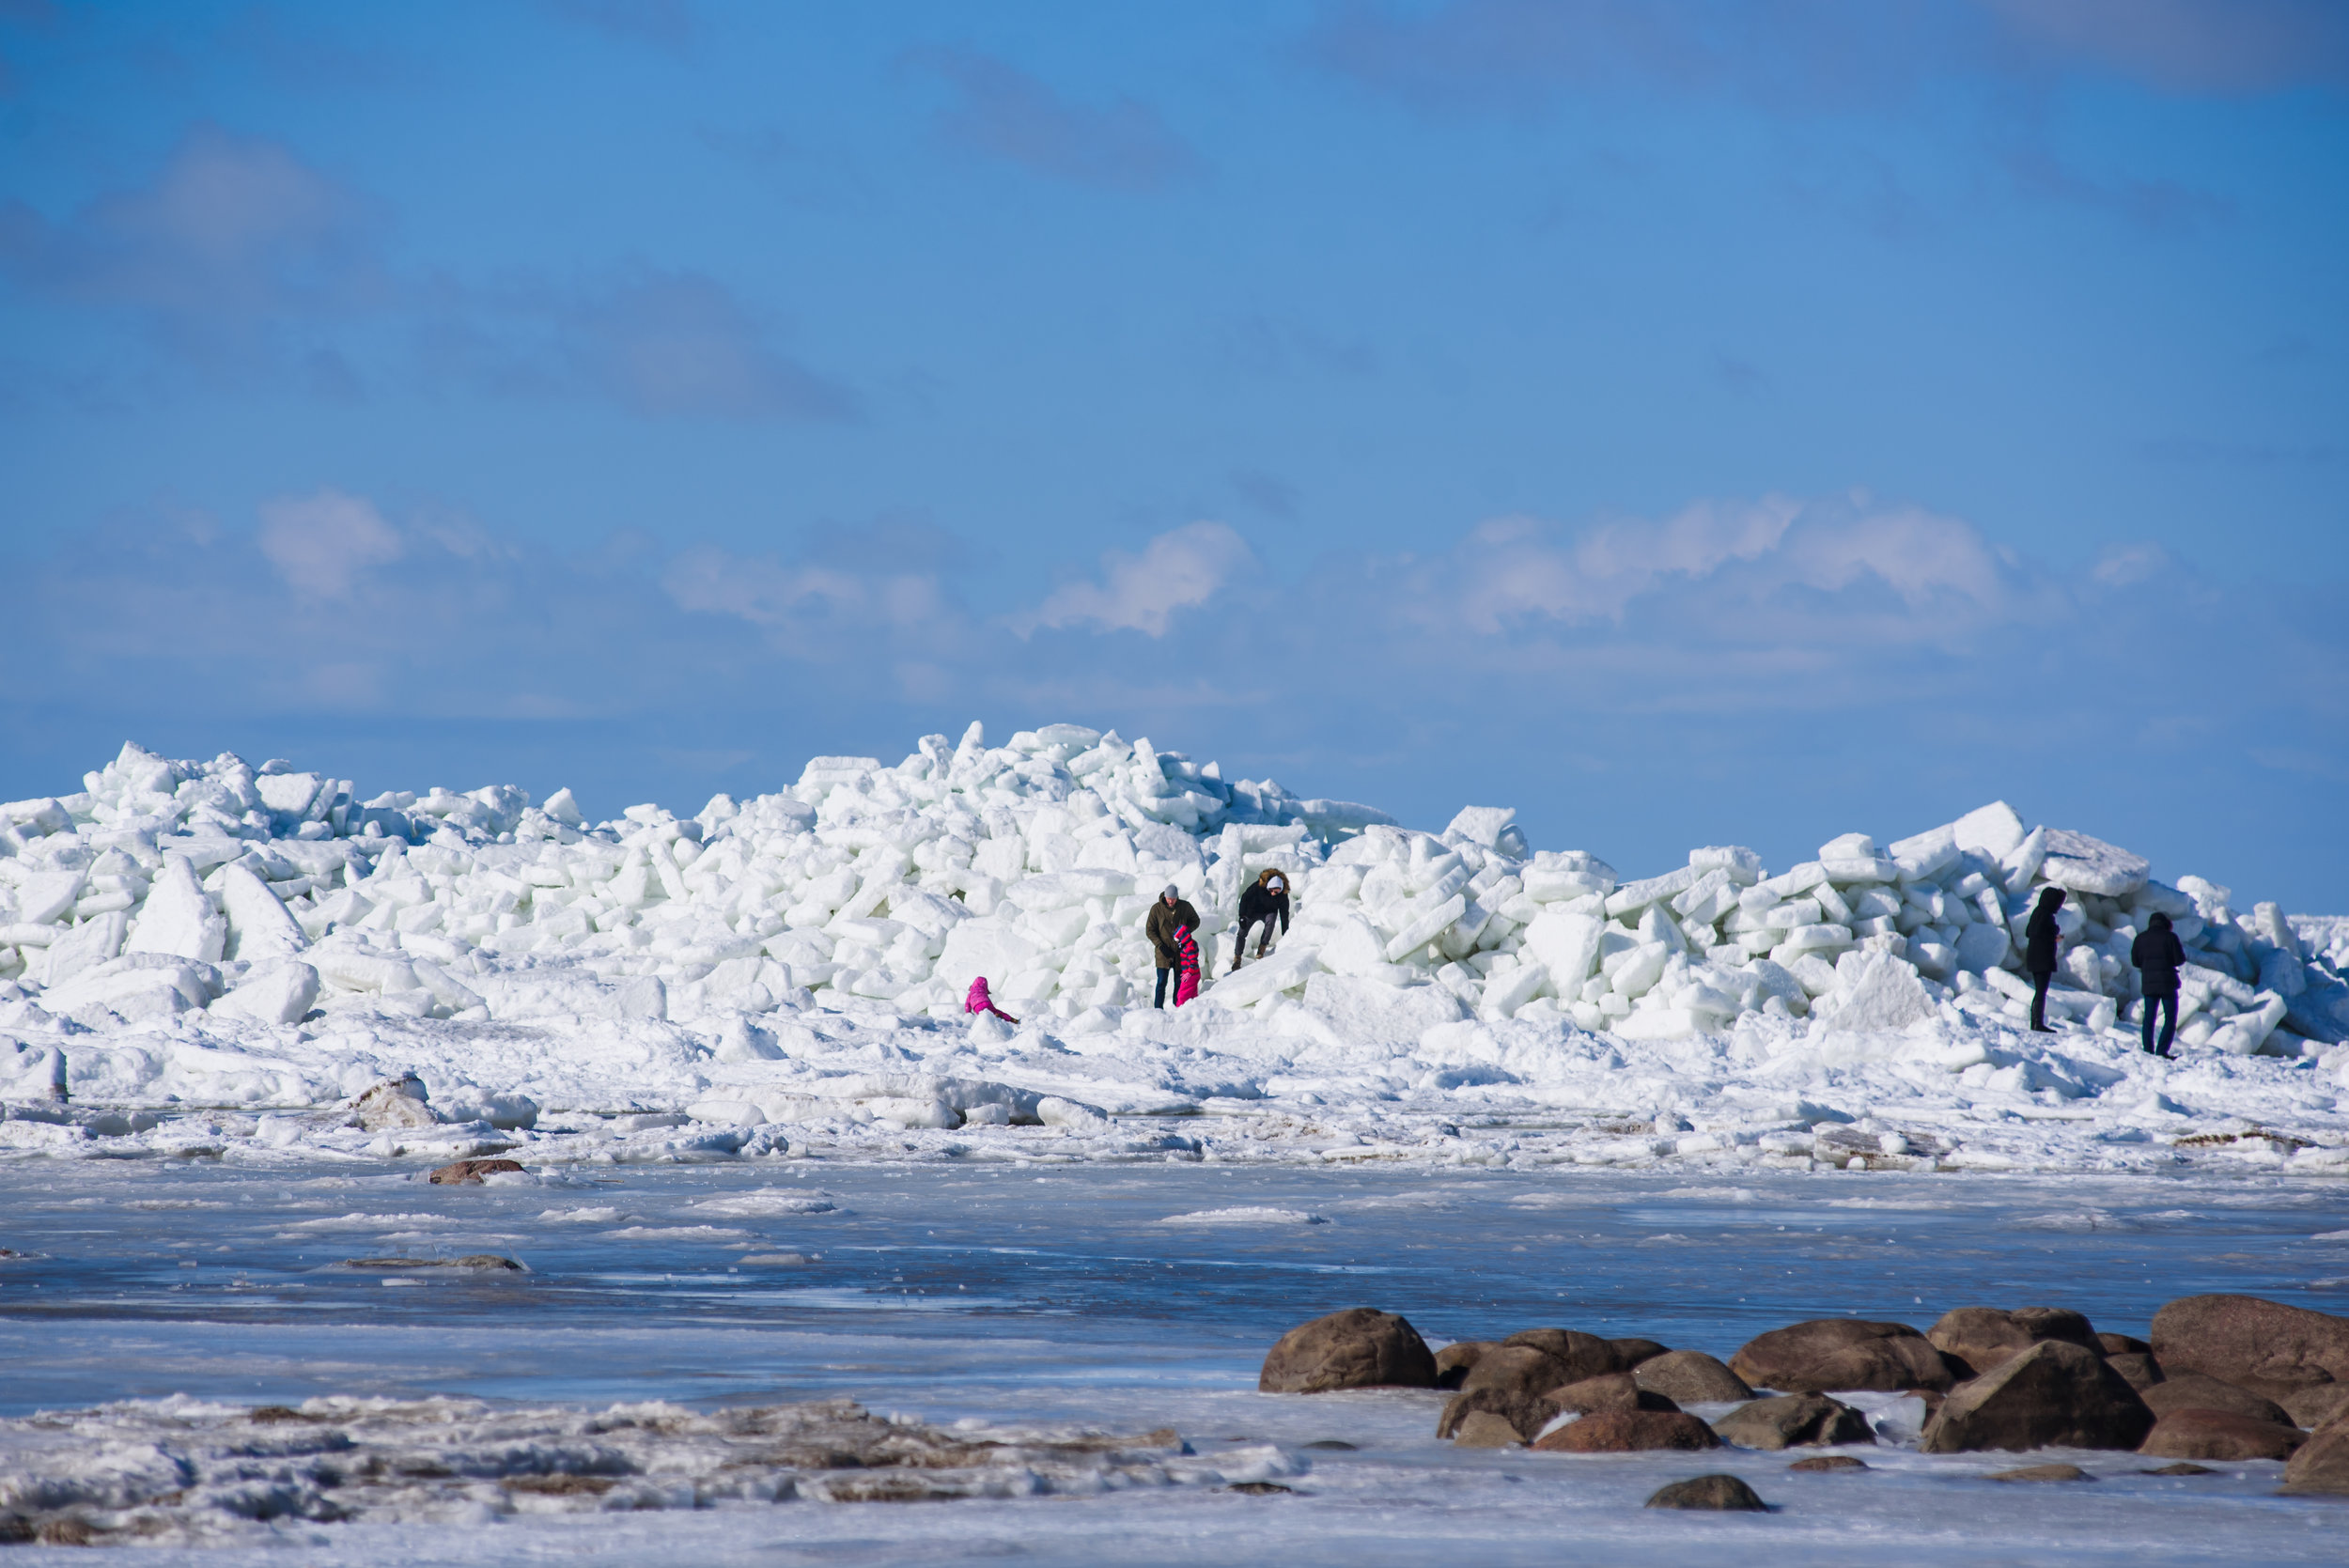 17.03.2018. MERSRAGS, LATVIA. Massive area with huge ice stack in sea.